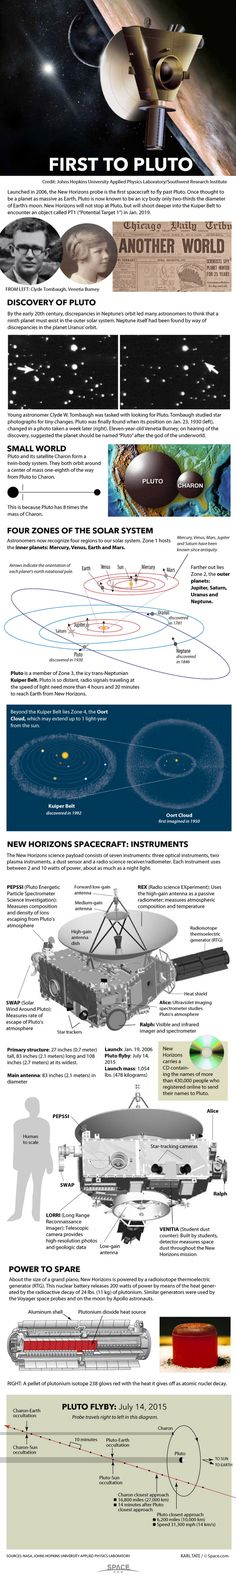 Photos of Pluto and Its Moons | Pluto Photos & Dwarf Planet Pluto | Pluto Moons & Solar System Planets Godspeed